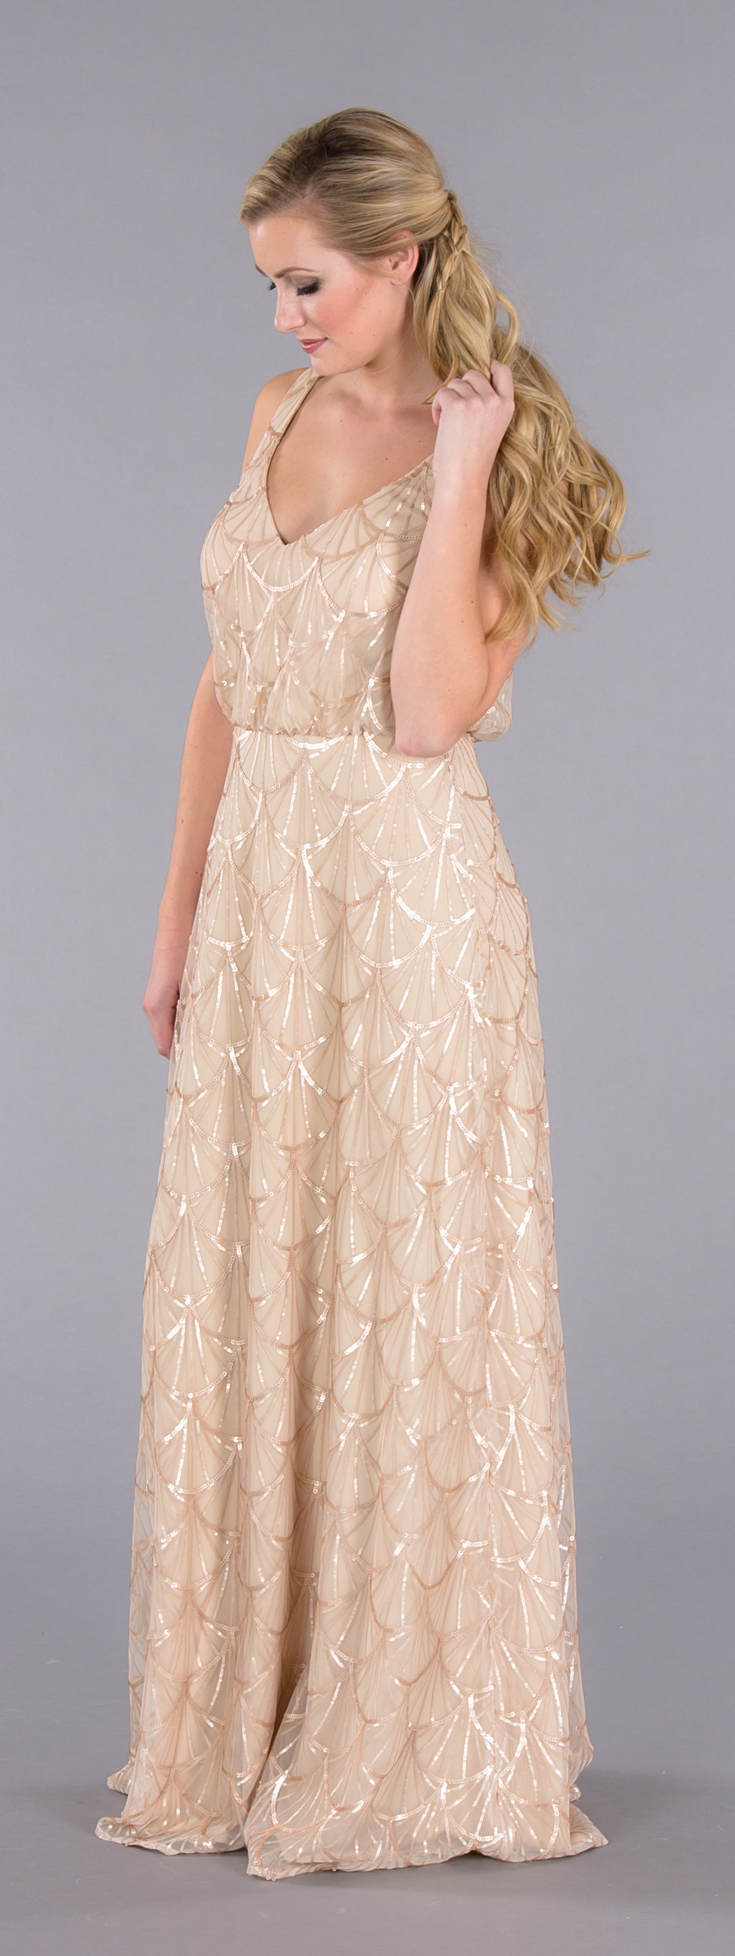 Wedding dresses under $200  A sparkly sequin bridesmaid dress for under  Your umaids will